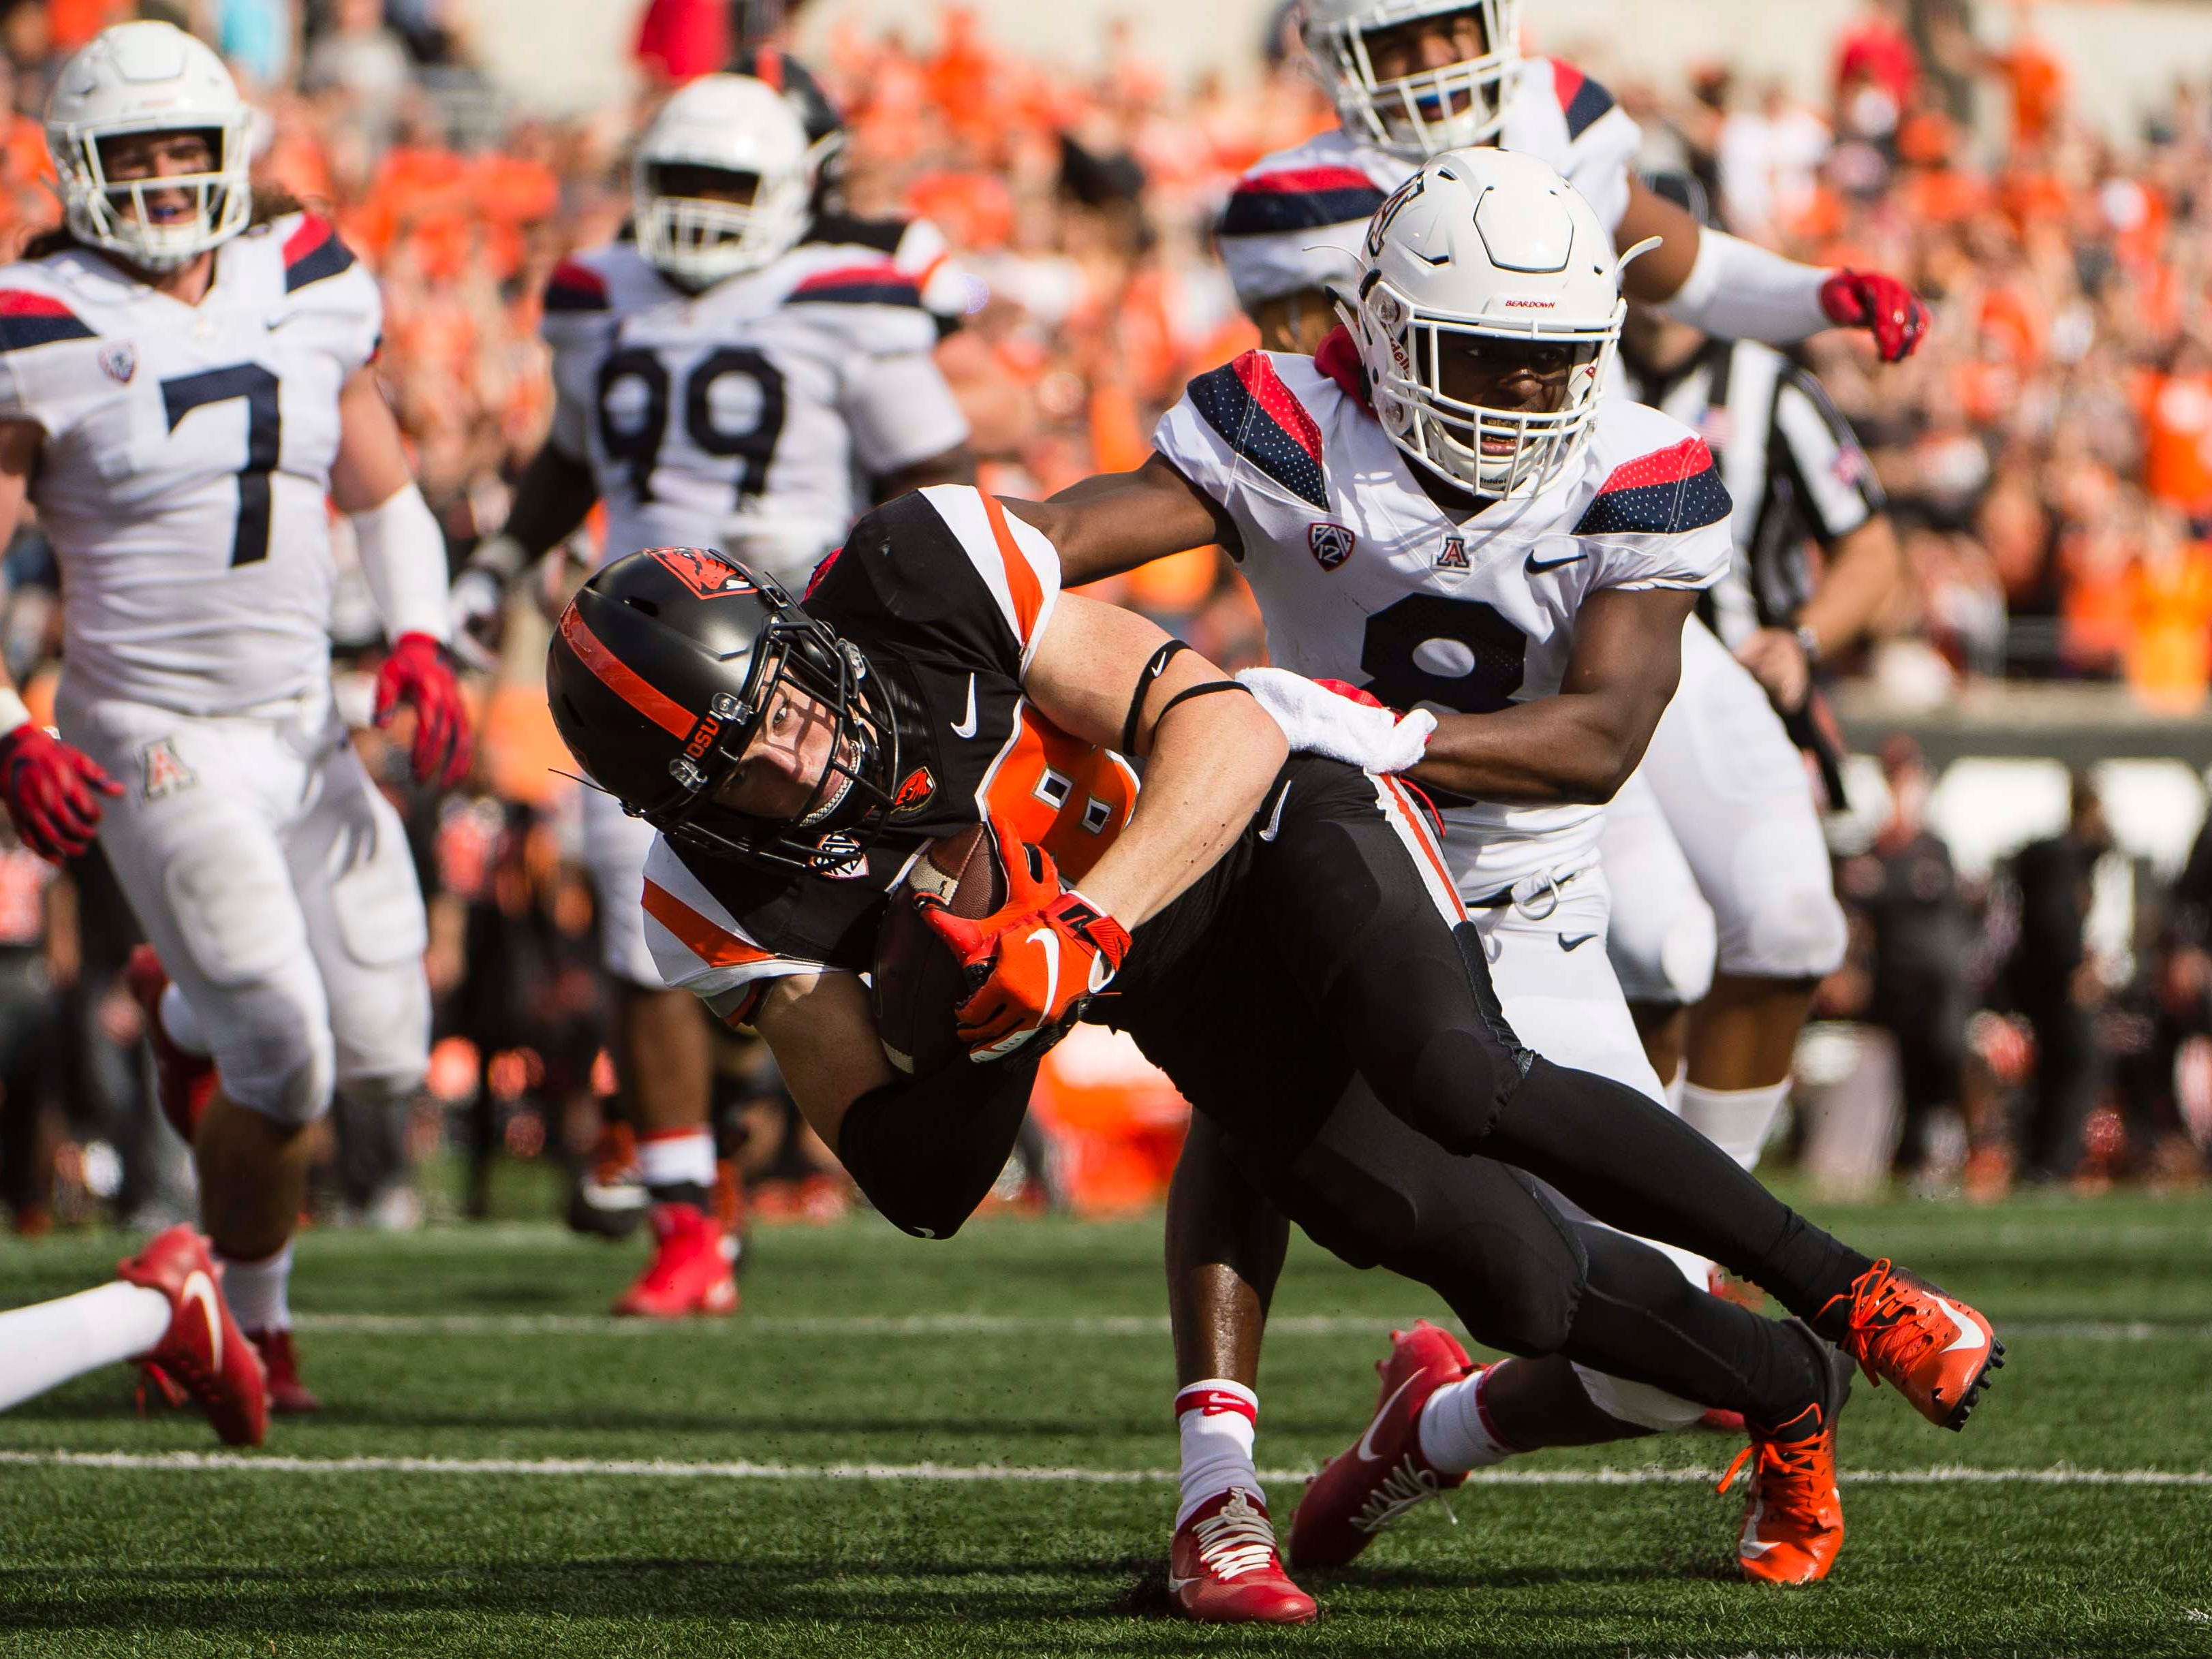 Sep 22, 2018; Corvallis, OR, USA; Oregon State Beavers wide receiver Timmy Hernandez (18) scores a touchdown during the second half against Arizona Wildcats cornerback Tim Hough (8) at Reser Stadium. The Arizona Wildcats won 35-14.